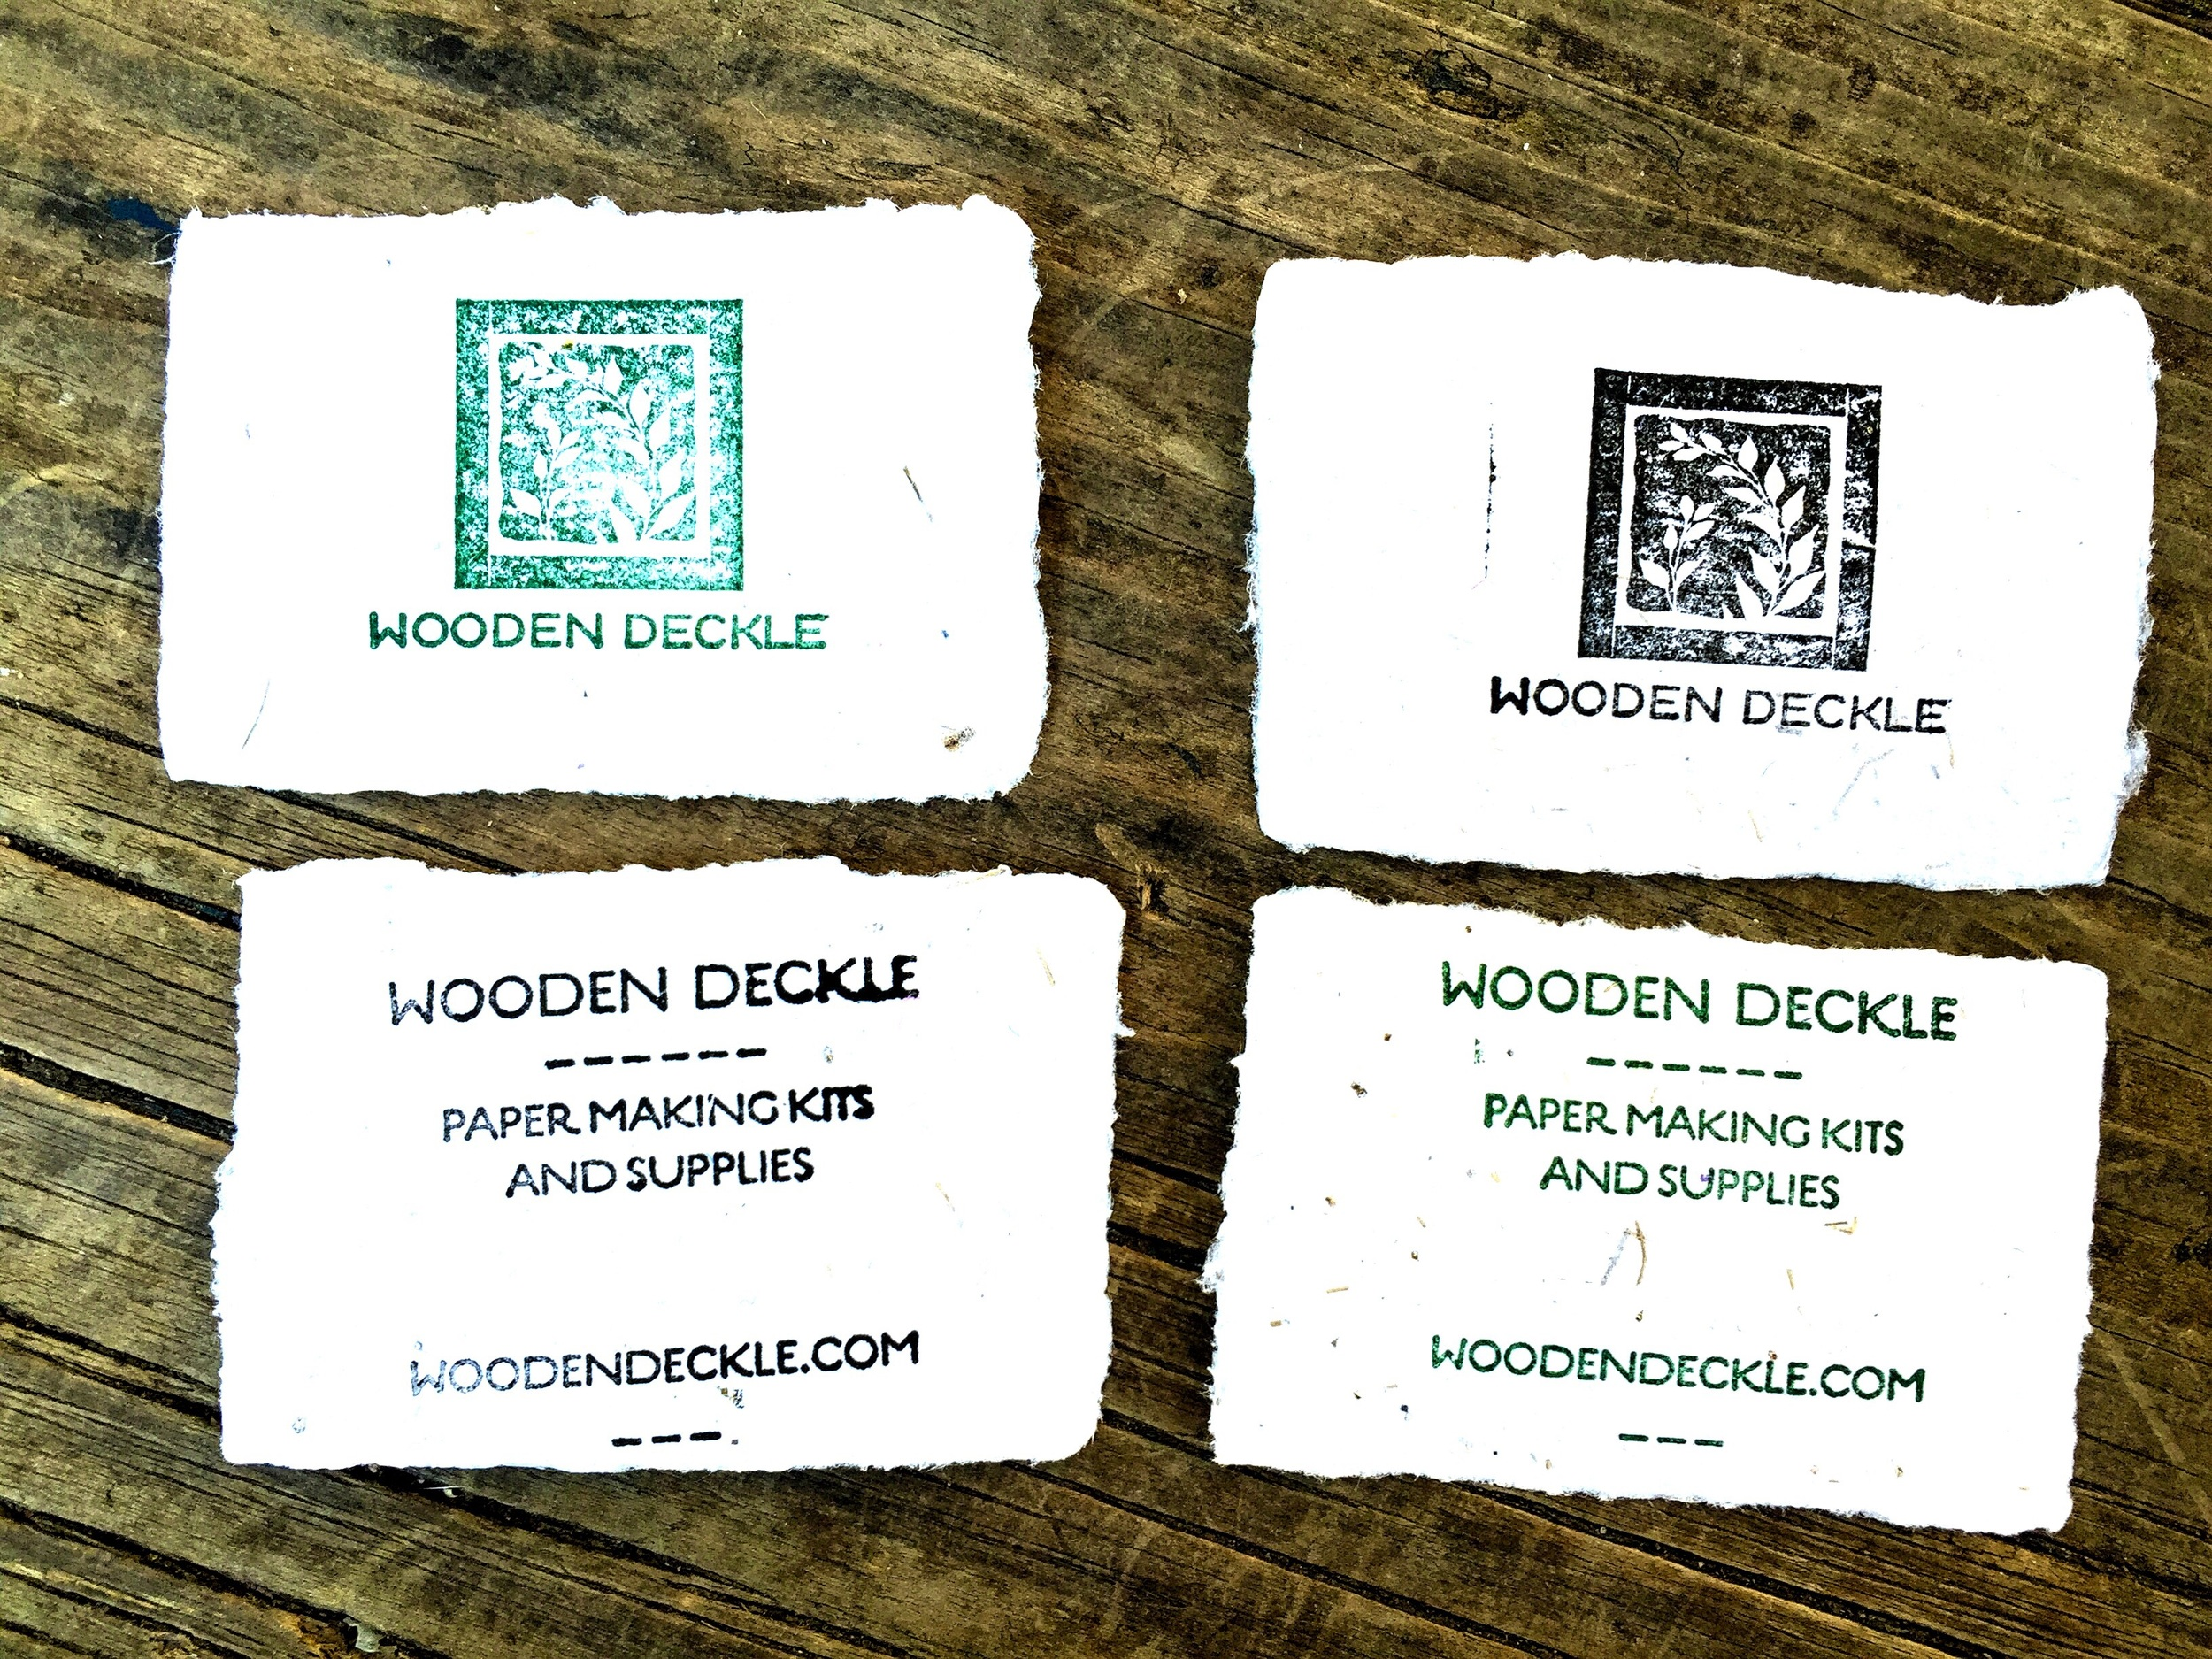 handmade-paper-business-cards-w.jpg